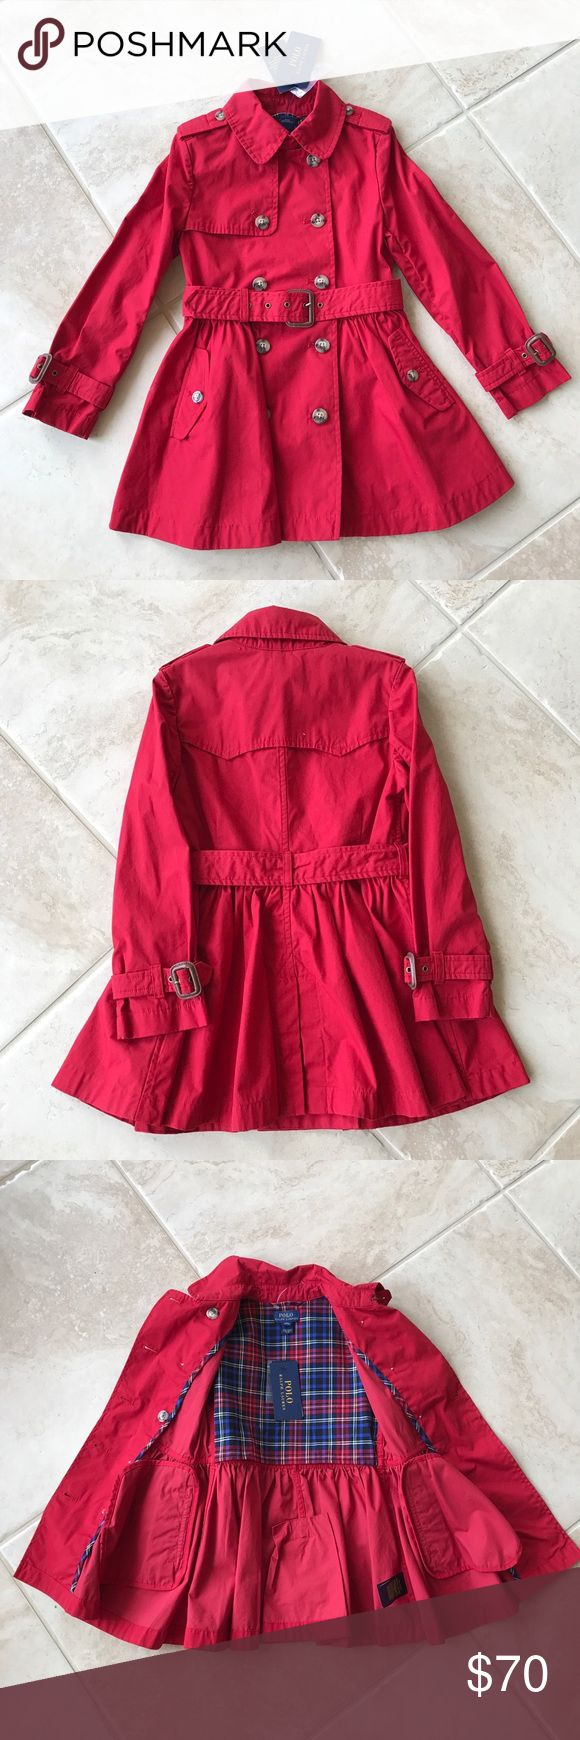 Polo Ralph Lauren girls Trench Coat Ralph Lauren polo Girls lightweight princess trench coat polo ralph lauren Jackets & Coats